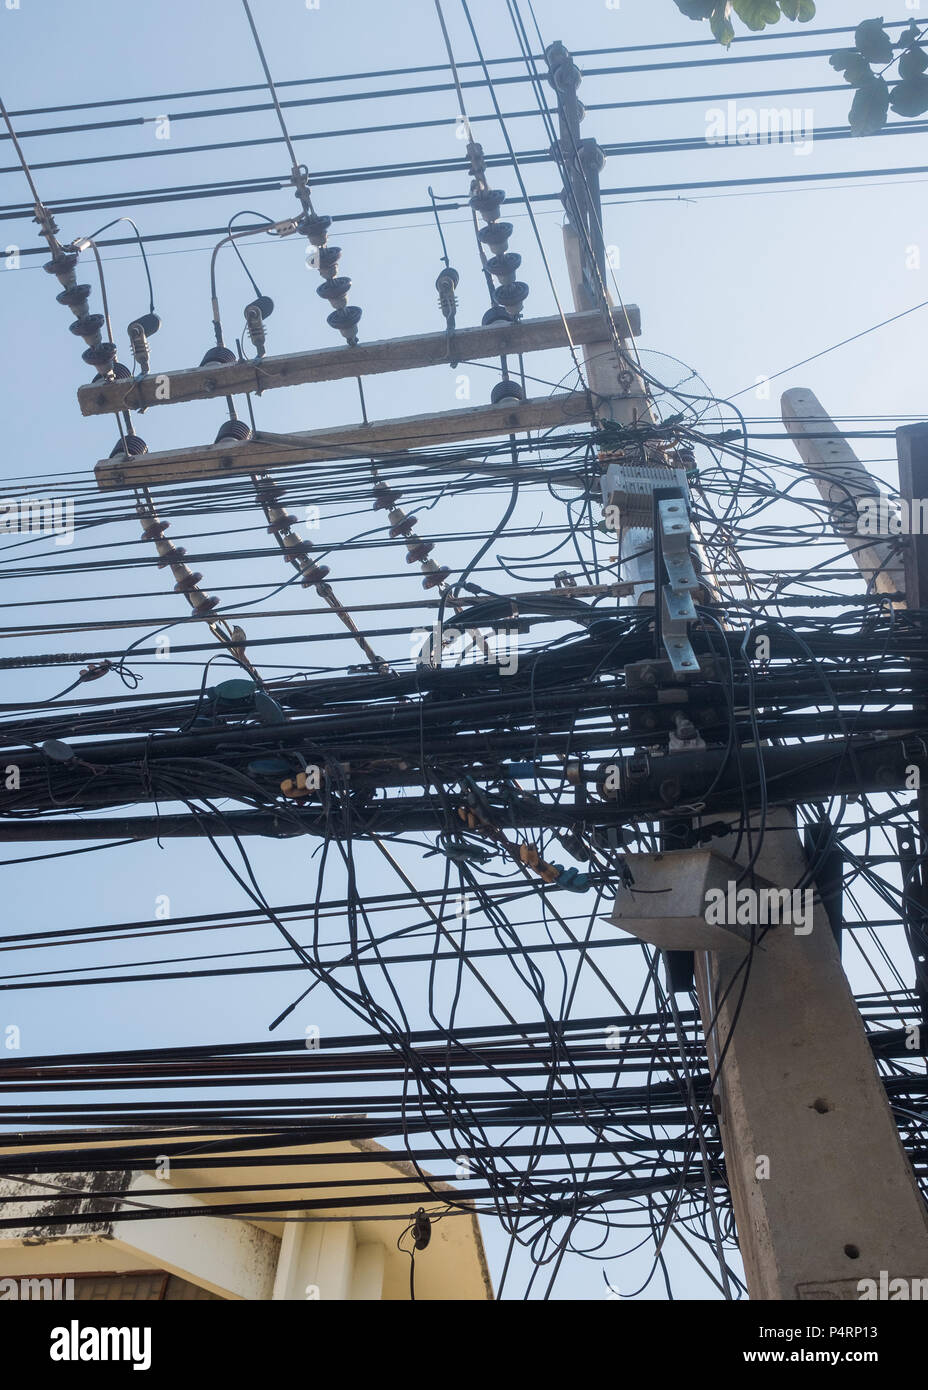 Low angle view of overhead electricity cables, Prachuap Khiri Khan Province, Hua Hin, Thailand, Asia. - Stock Image